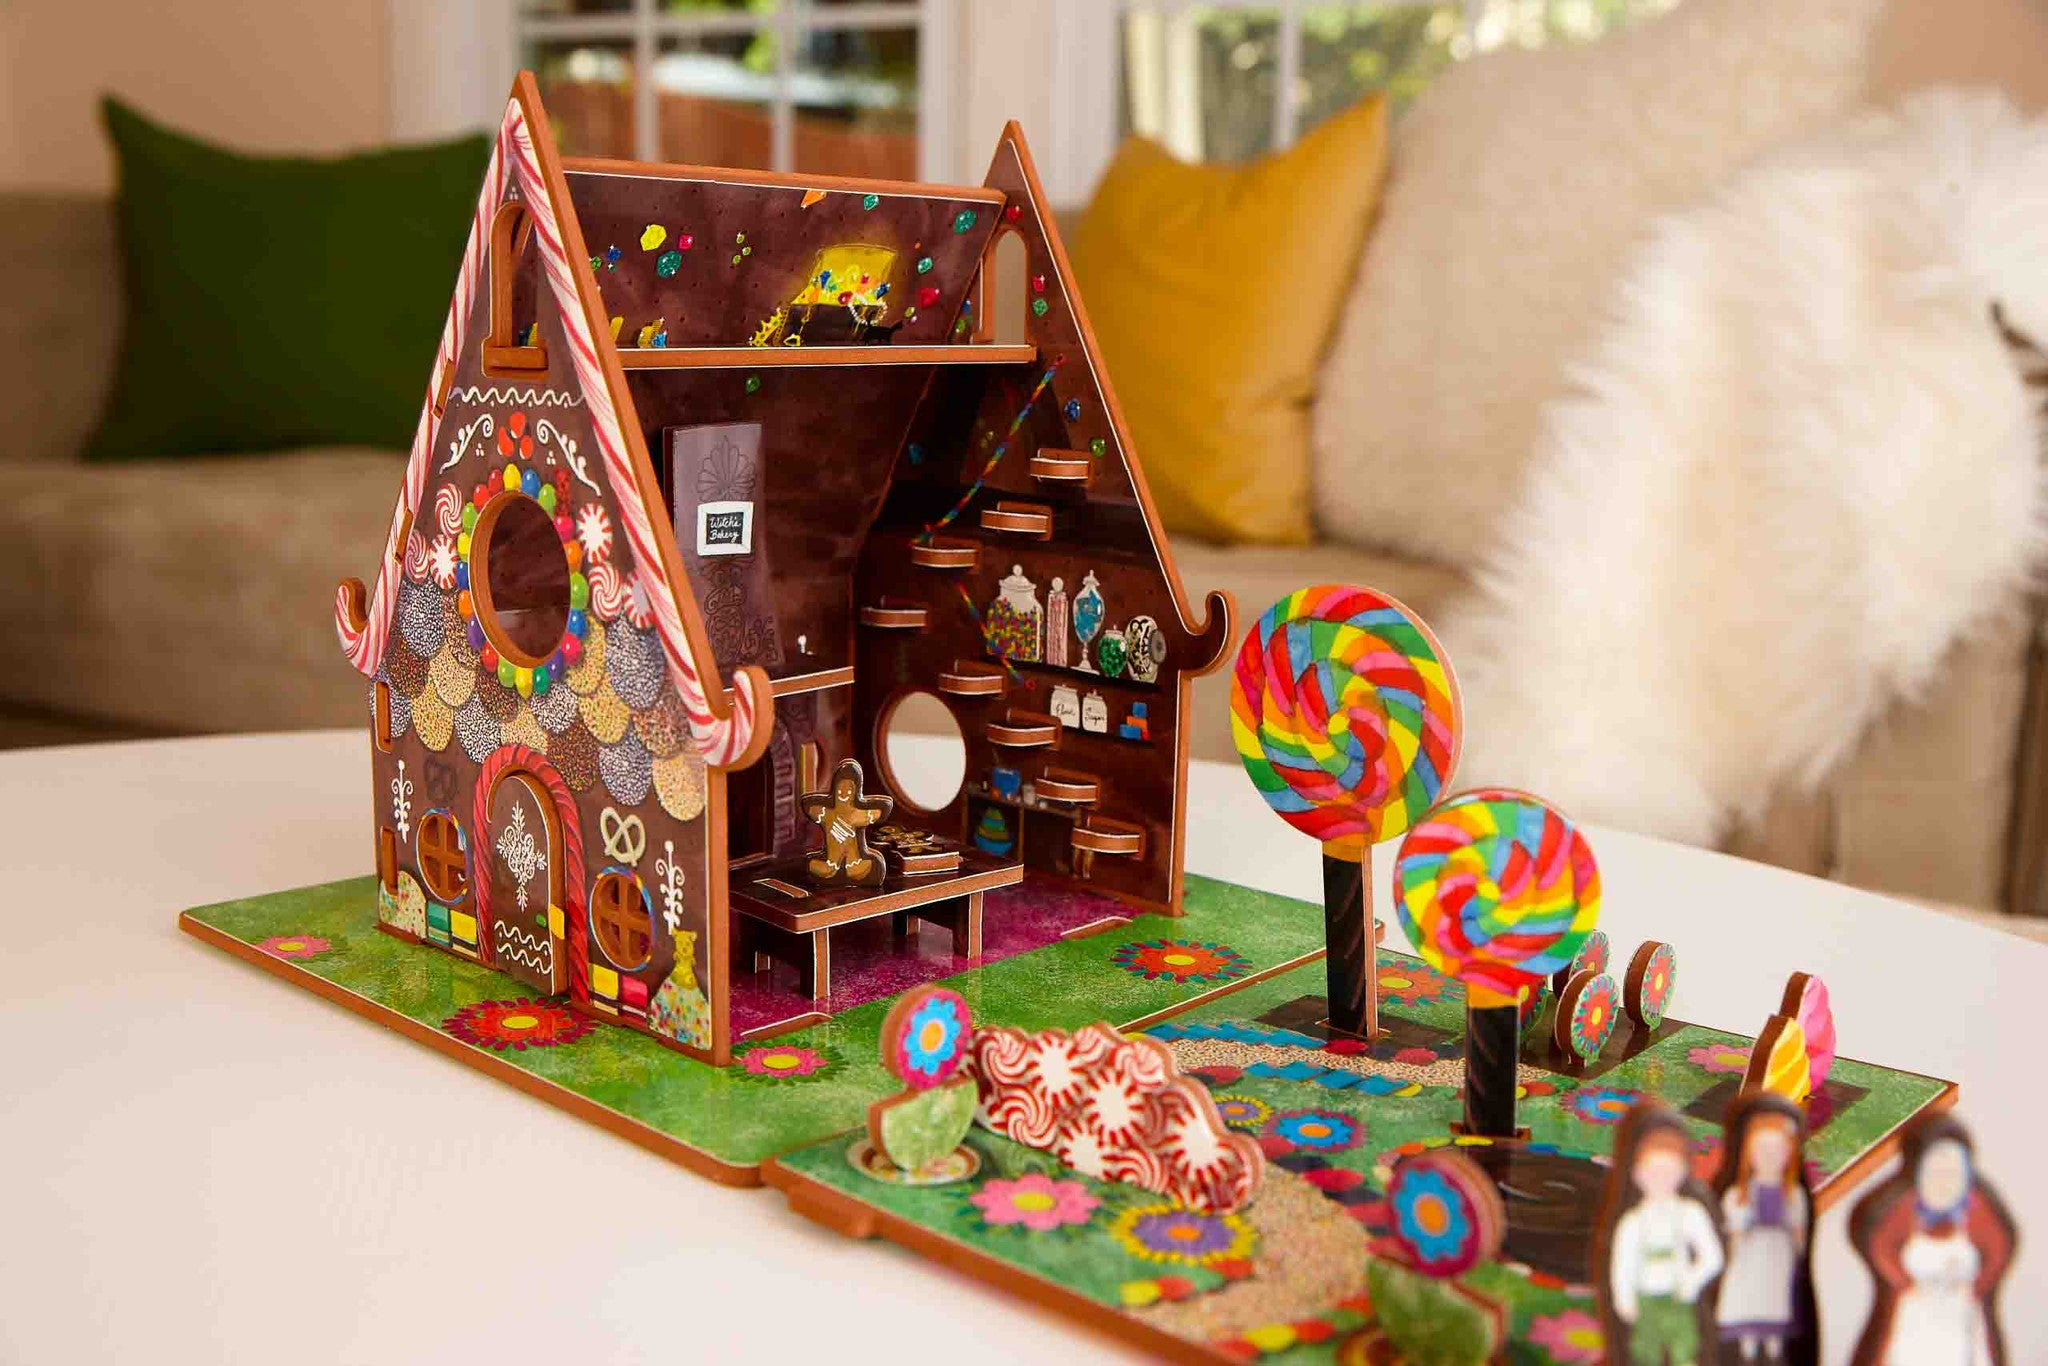 #2203 Hansel and Gretel Book & Play Set - WHOLESALE Case of 3